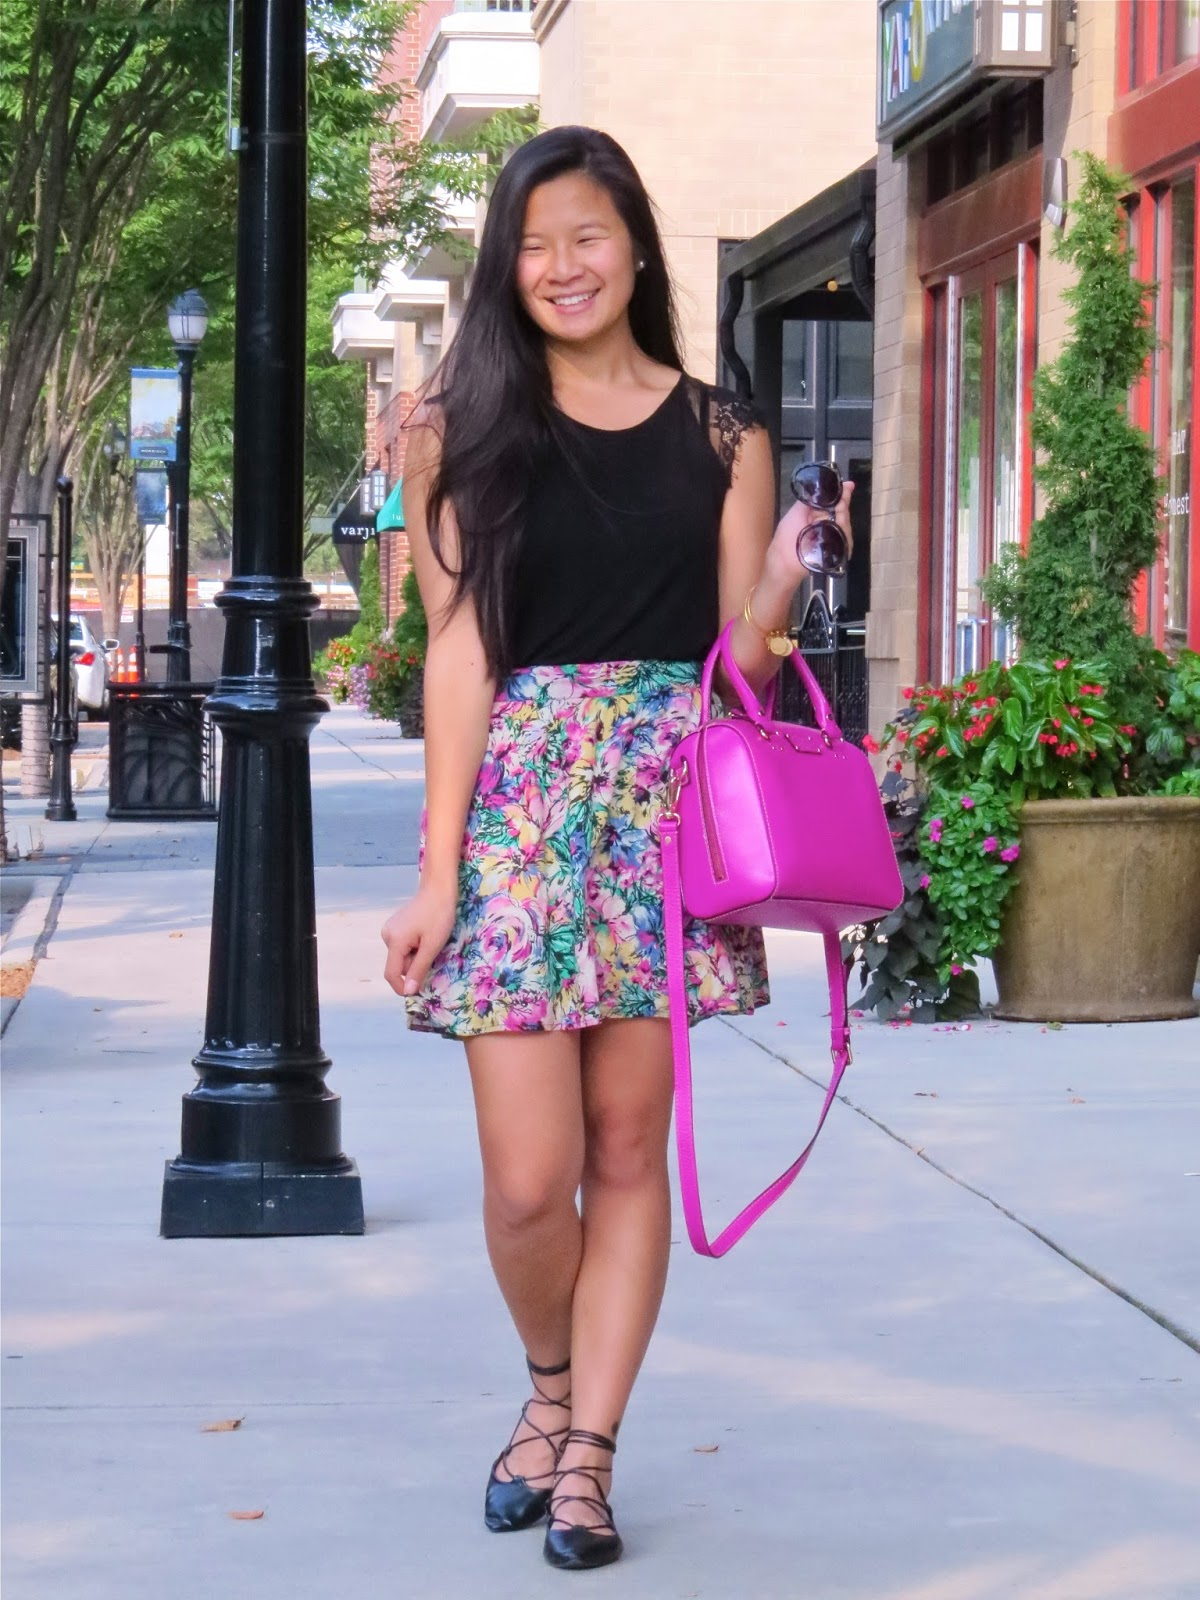 girly_floral_outfit